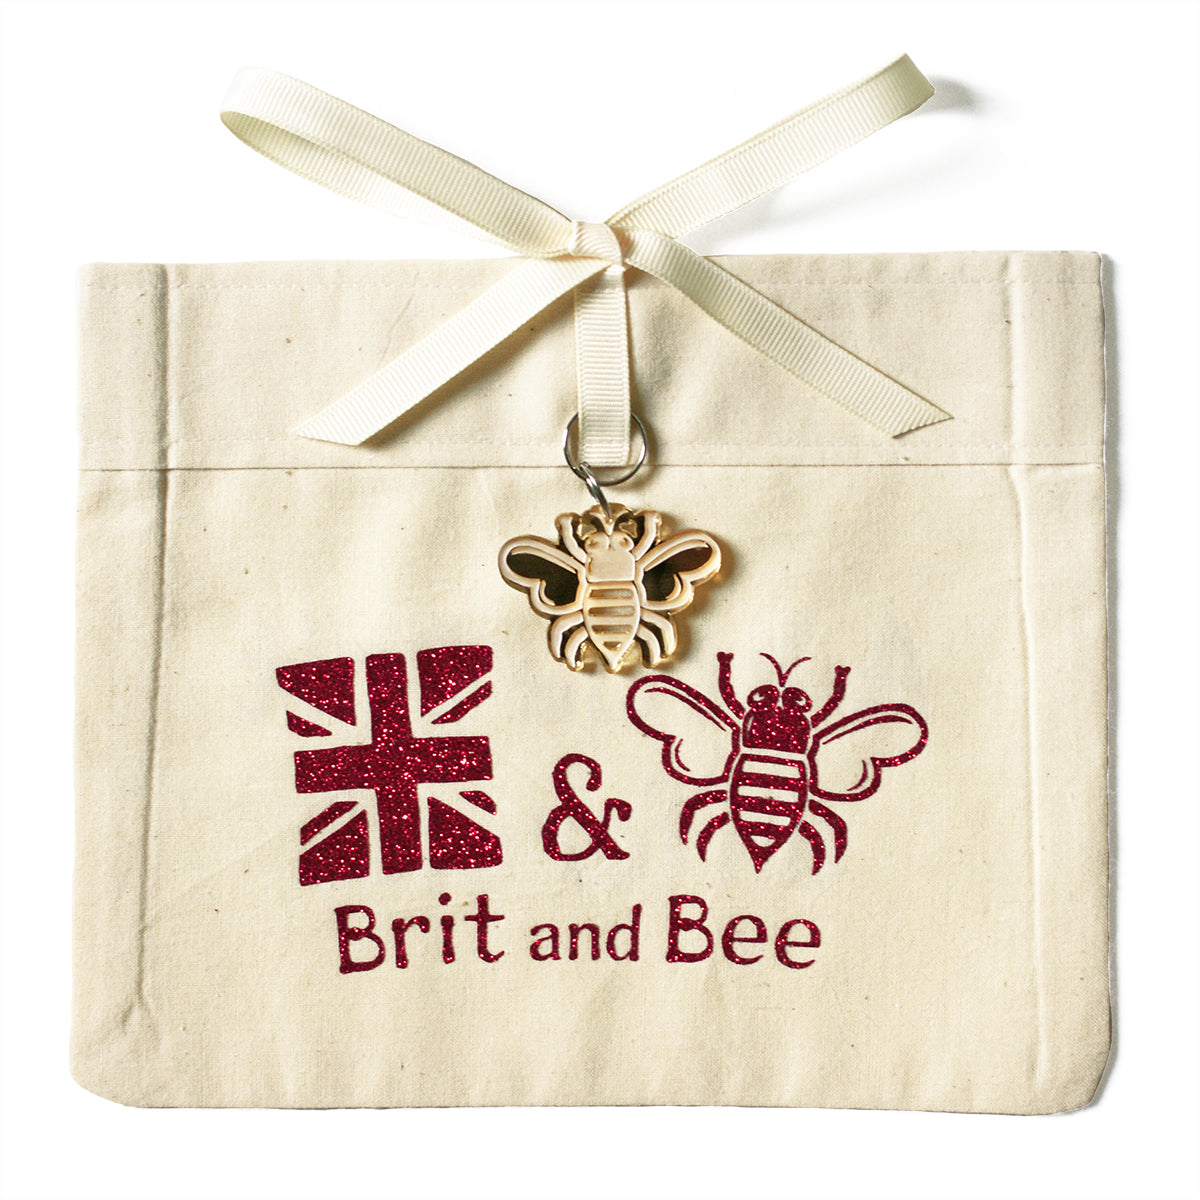 Brit and Bee Sorority Ribbon Alumna Decal - Alpha Omicron Pi